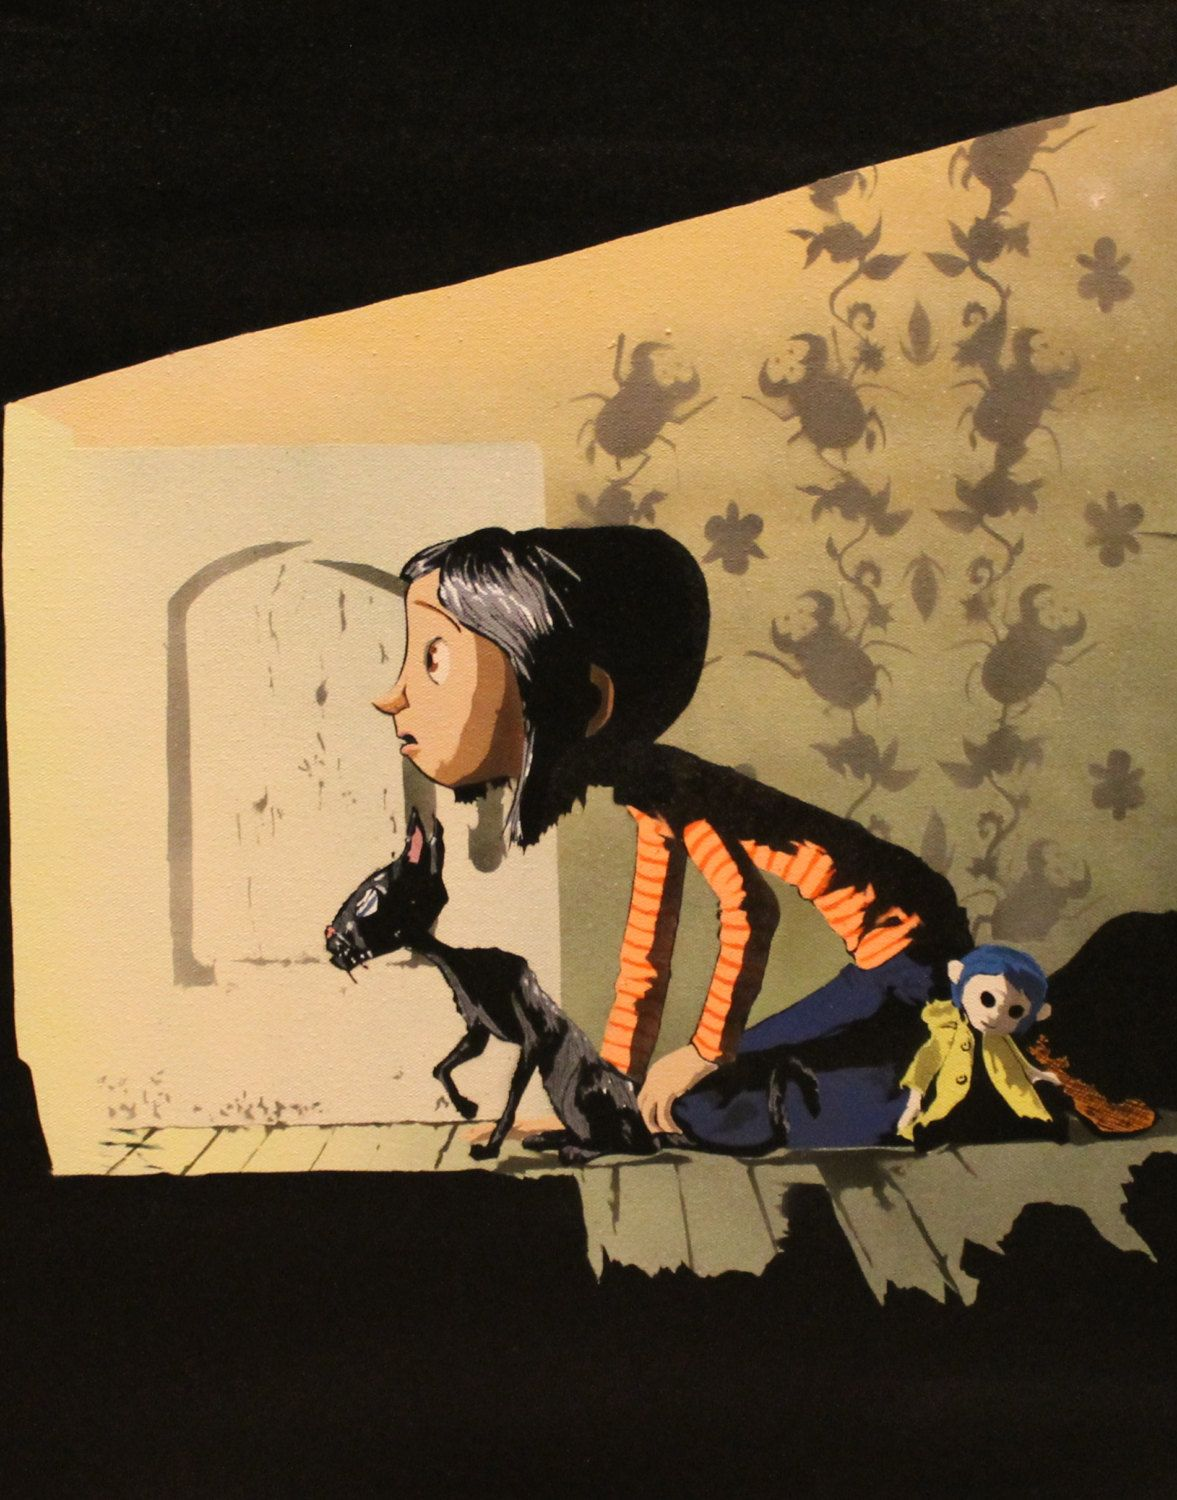 Coraline and Little Me Print Coraline, Films and Printing